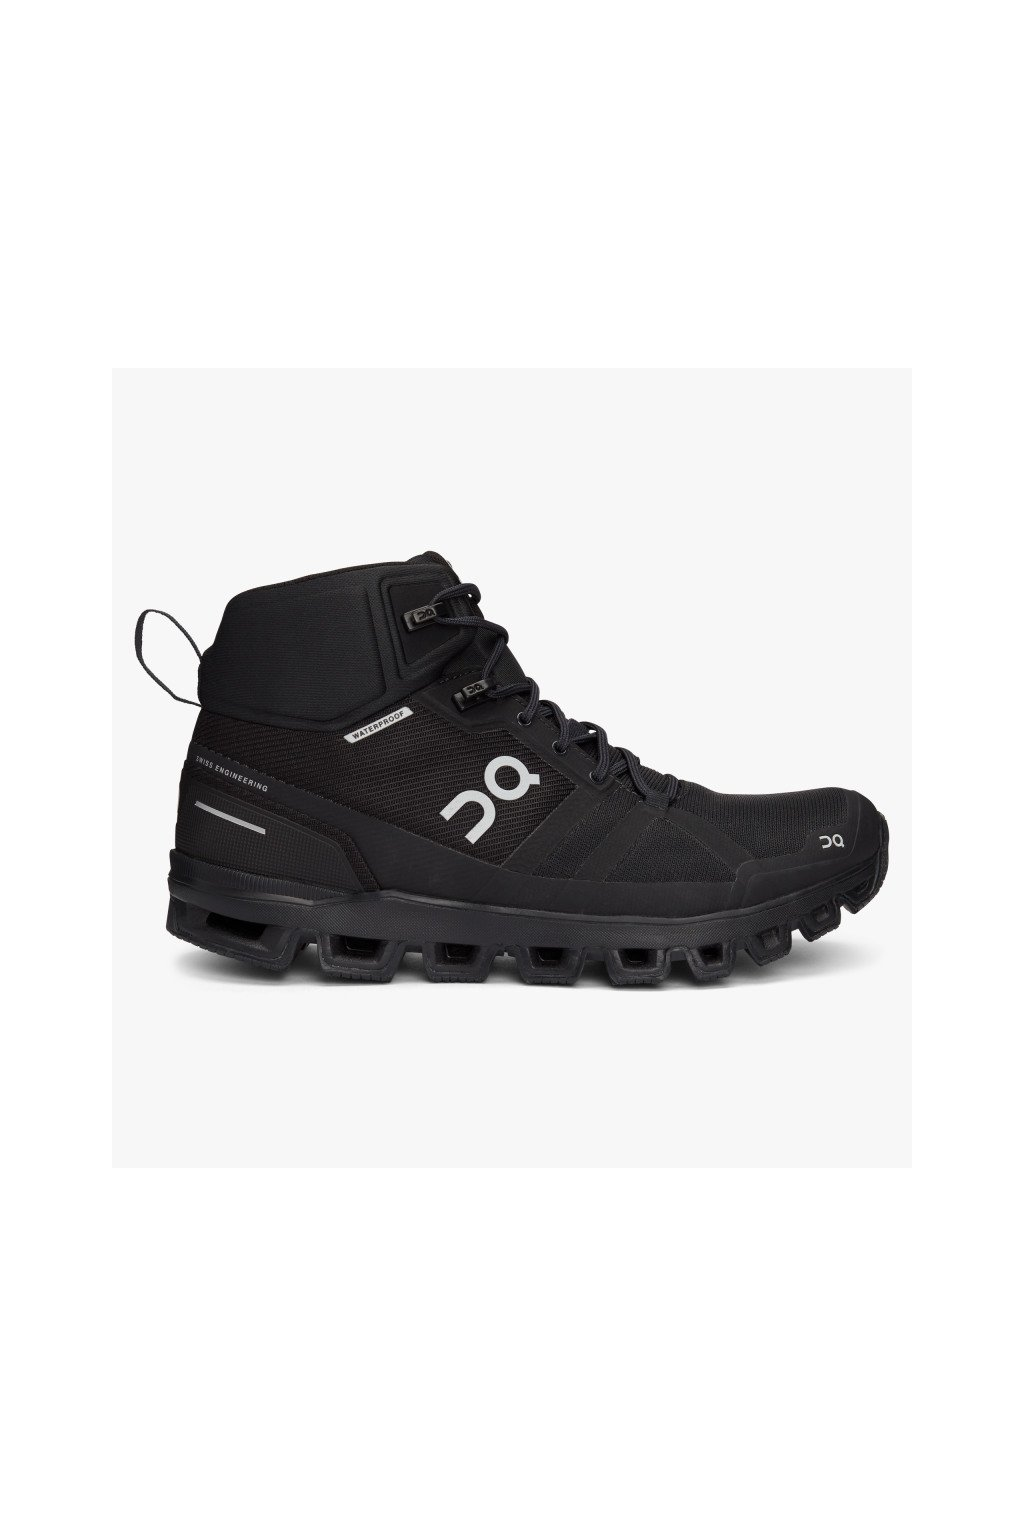 cloudrock waterproof fw19 all black w g1